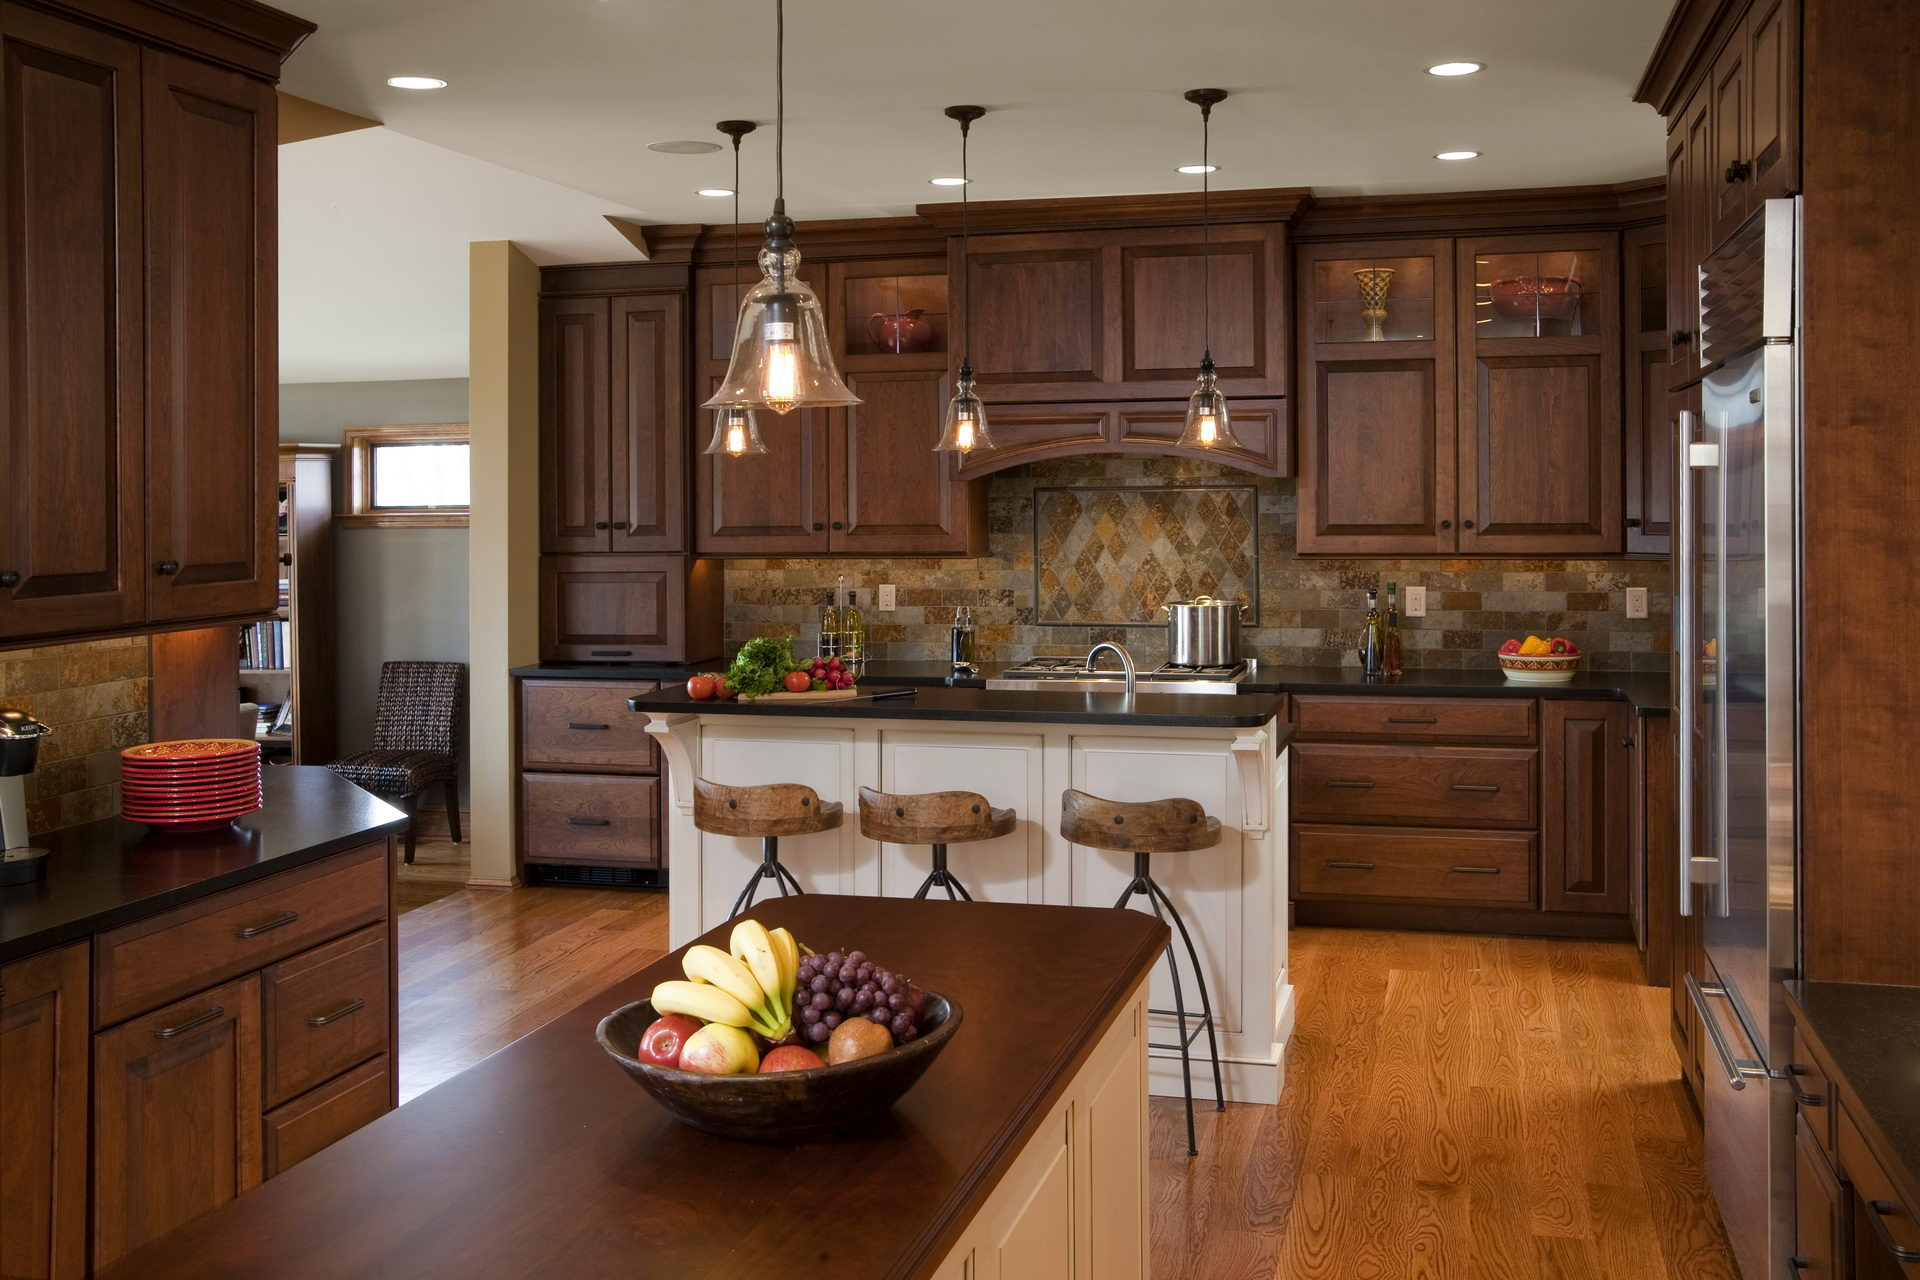 Best Kitchen Gallery: 42 Best Kitchen Design Ideas With Different Styles And Layouts of Traditional Style Kitchen Cabinets on cal-ite.com